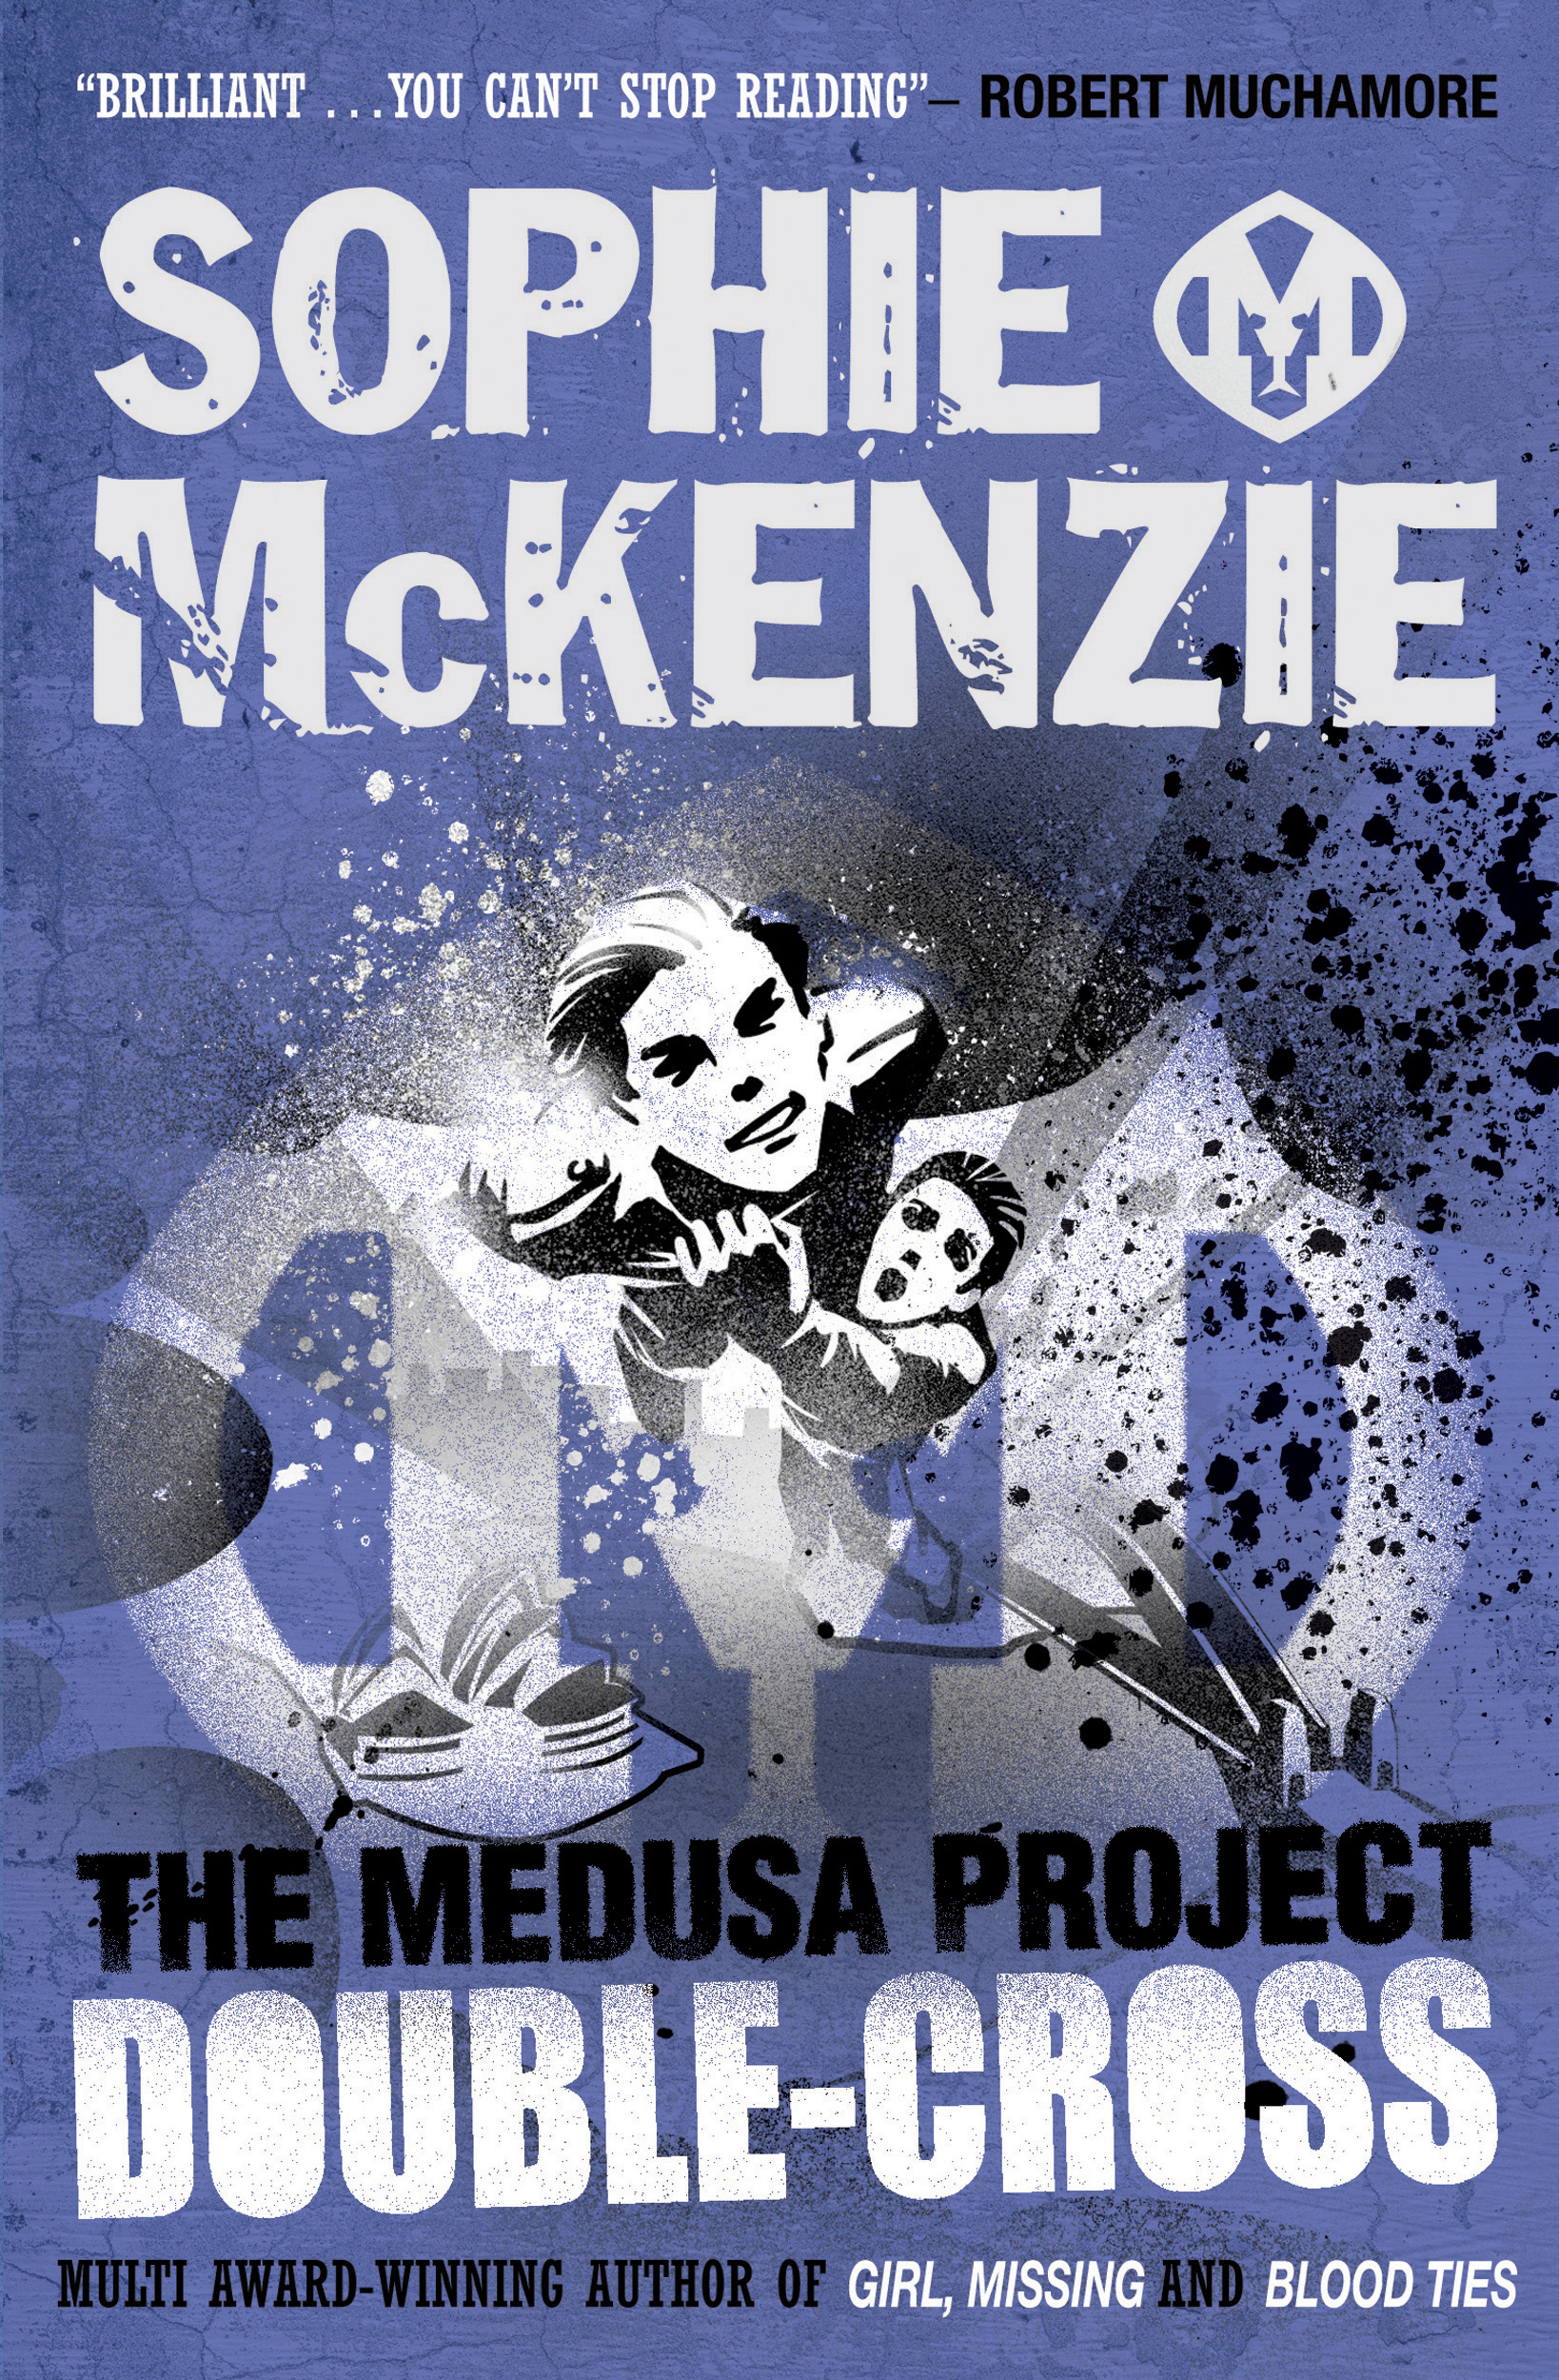 The medusa project double cross book by sophie mckenzie cvr9780857070692 9780857070692 hr fandeluxe Image collections